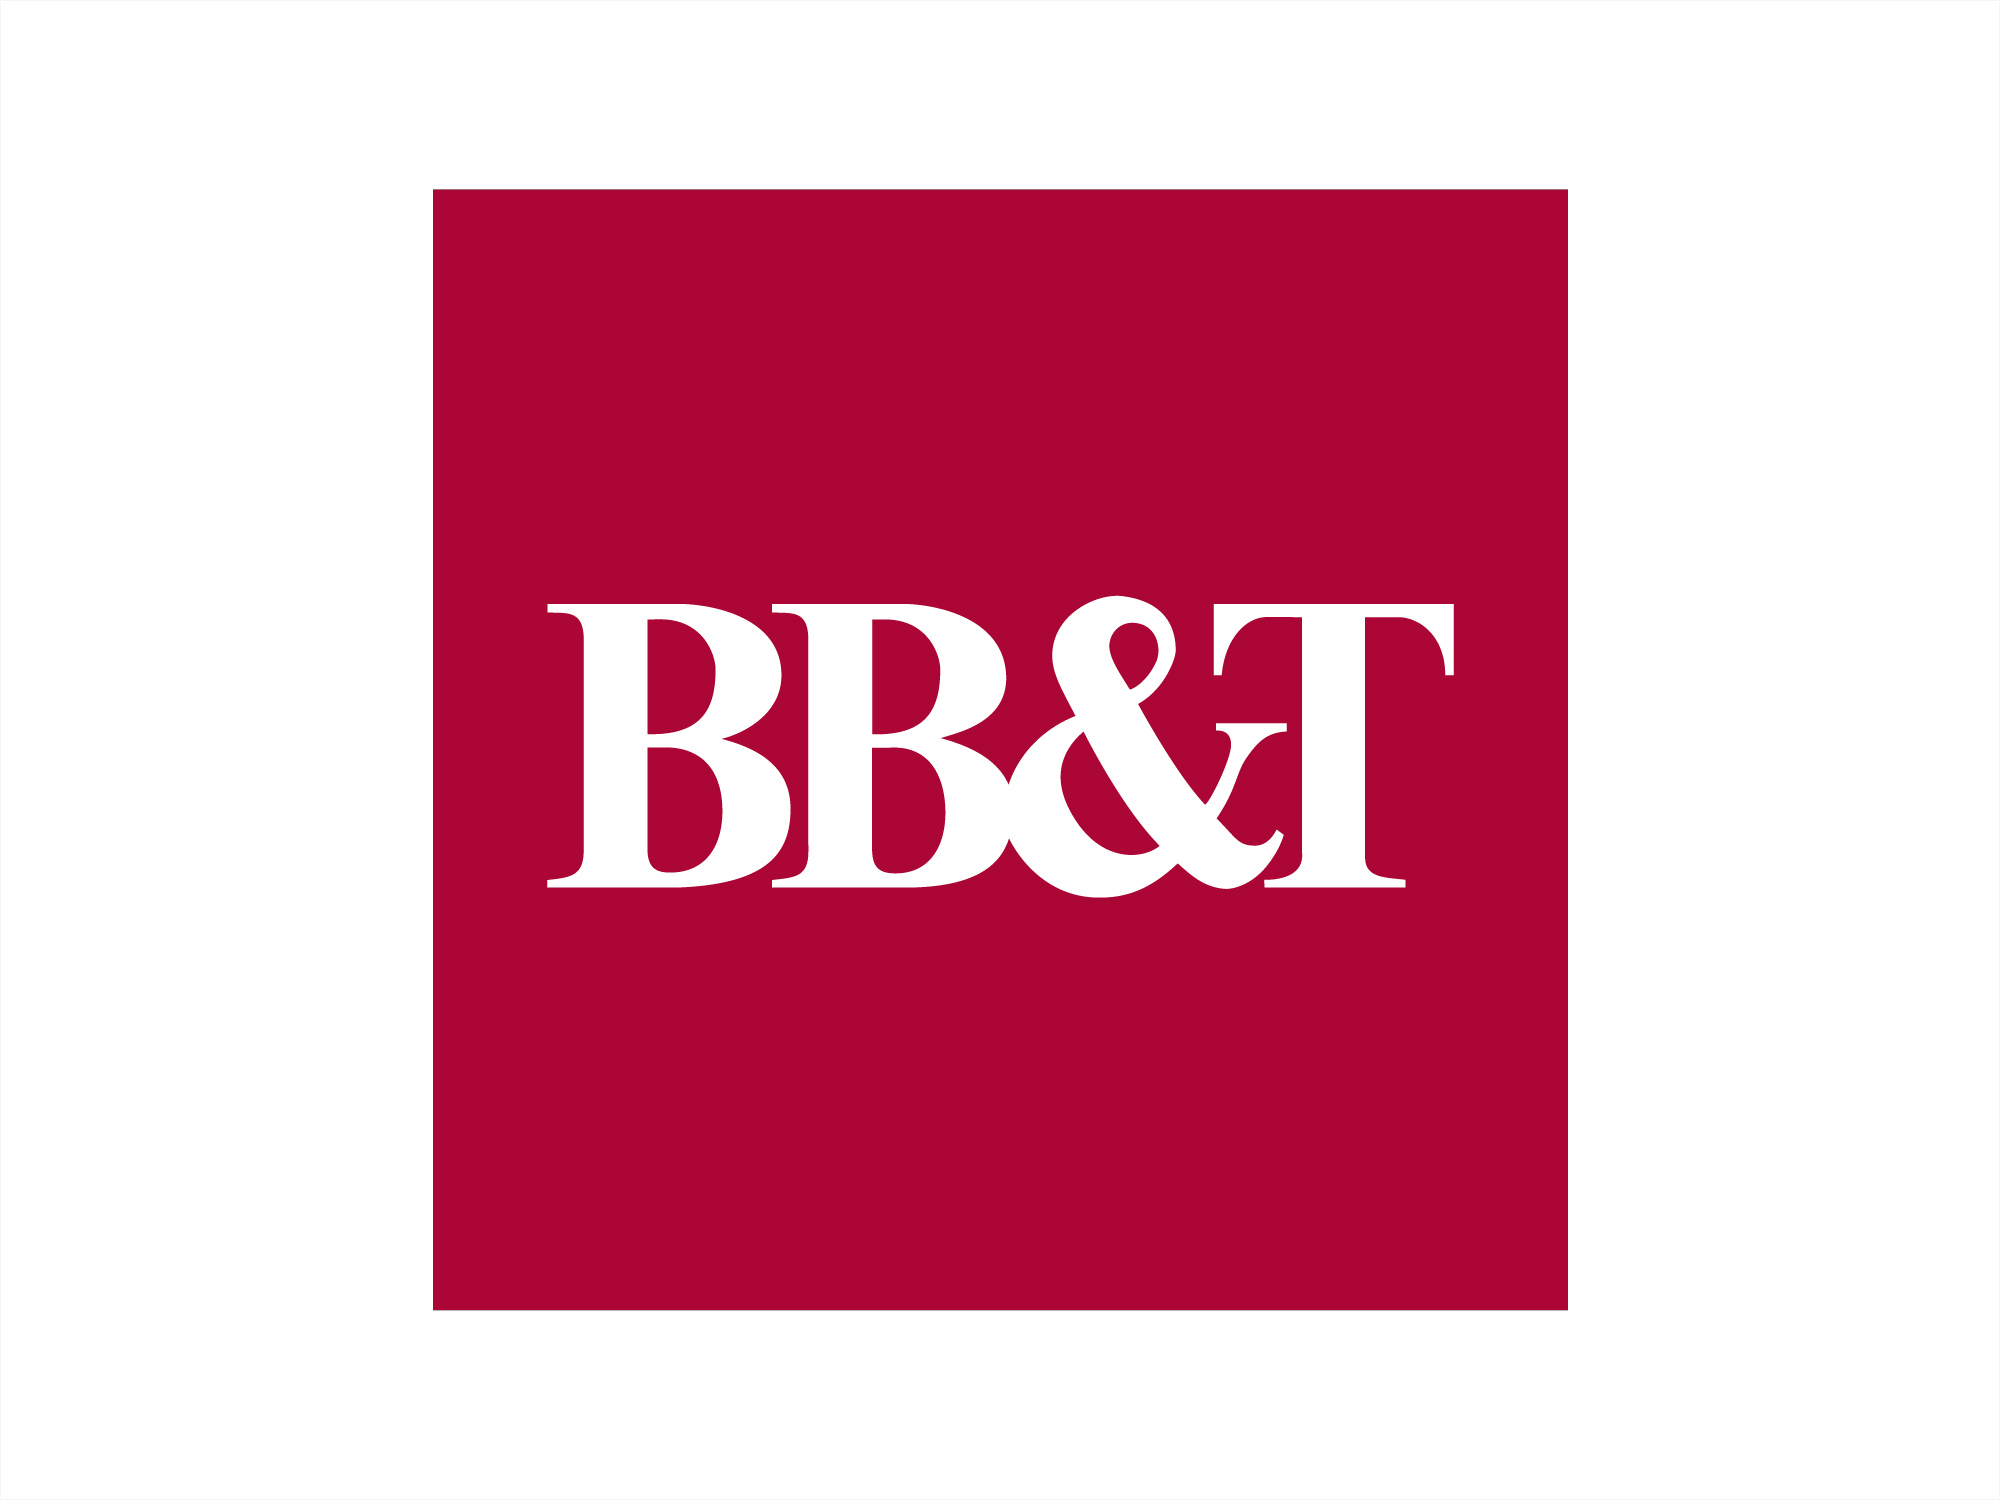 BB&T bank customers locked out of accounts due to technical issue